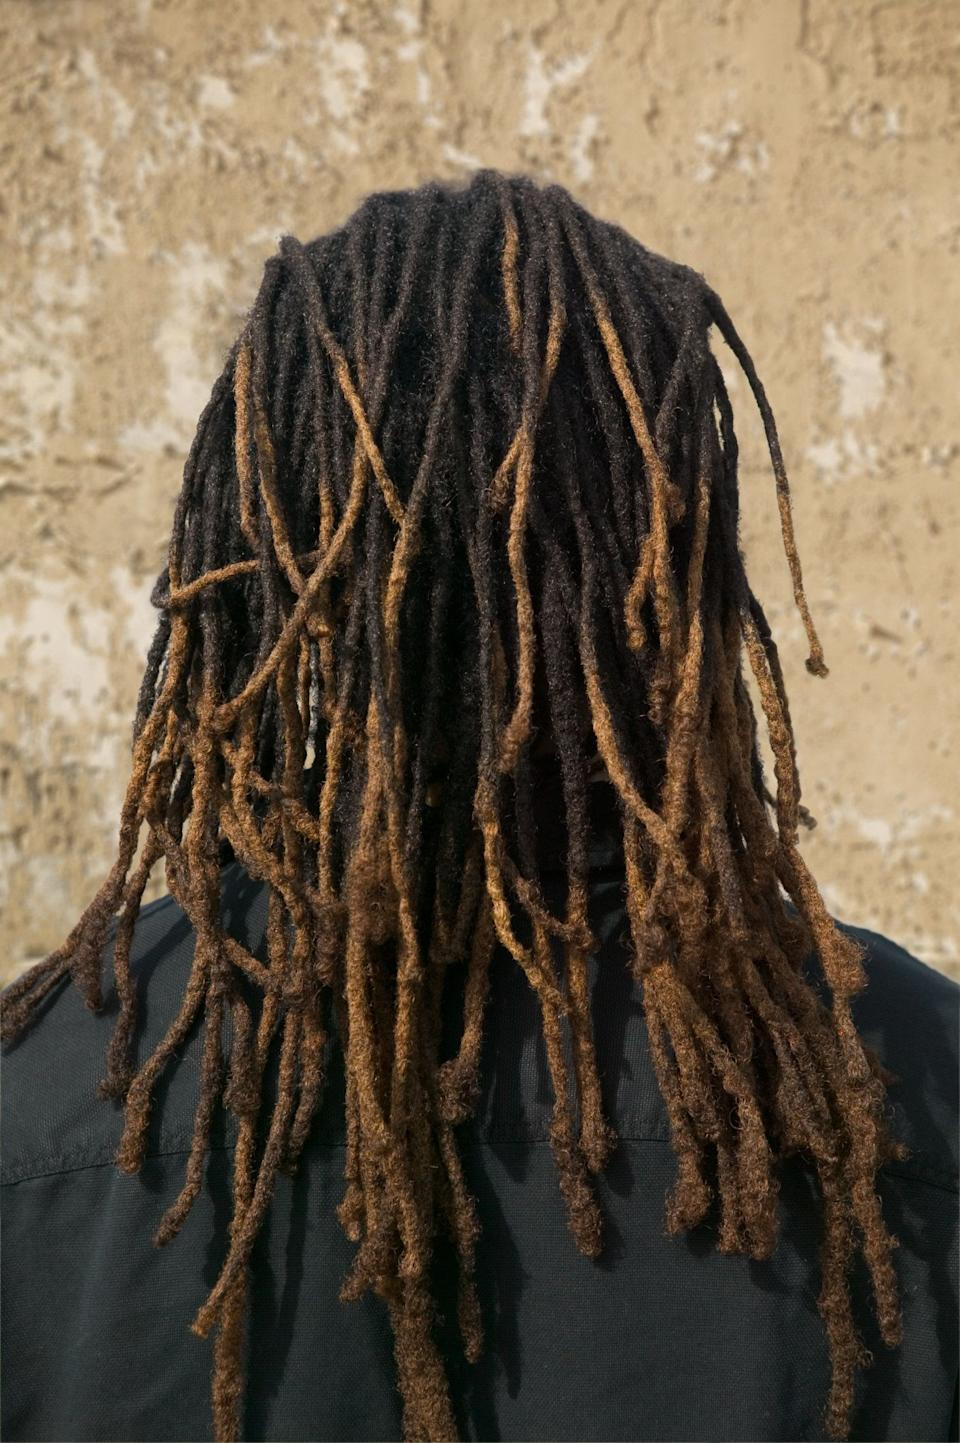 """A Louisiana school district kickeda student who practices theRastafarian faith out of school for <a href=""""http://www.huffingtonpost.com/2014/08/26/south-plaquemines-rastafarian-student_n_5717489.html"""">wearing dreadlocks</a> in 2014. He was able to return after the American Civil Liberties Union <a href=""""http://atlantablackstar.com/2014/10/30/6-ridiculous-reasons-black-students-have-been-suspended-from-school/5/"""">came to his defense</a>."""